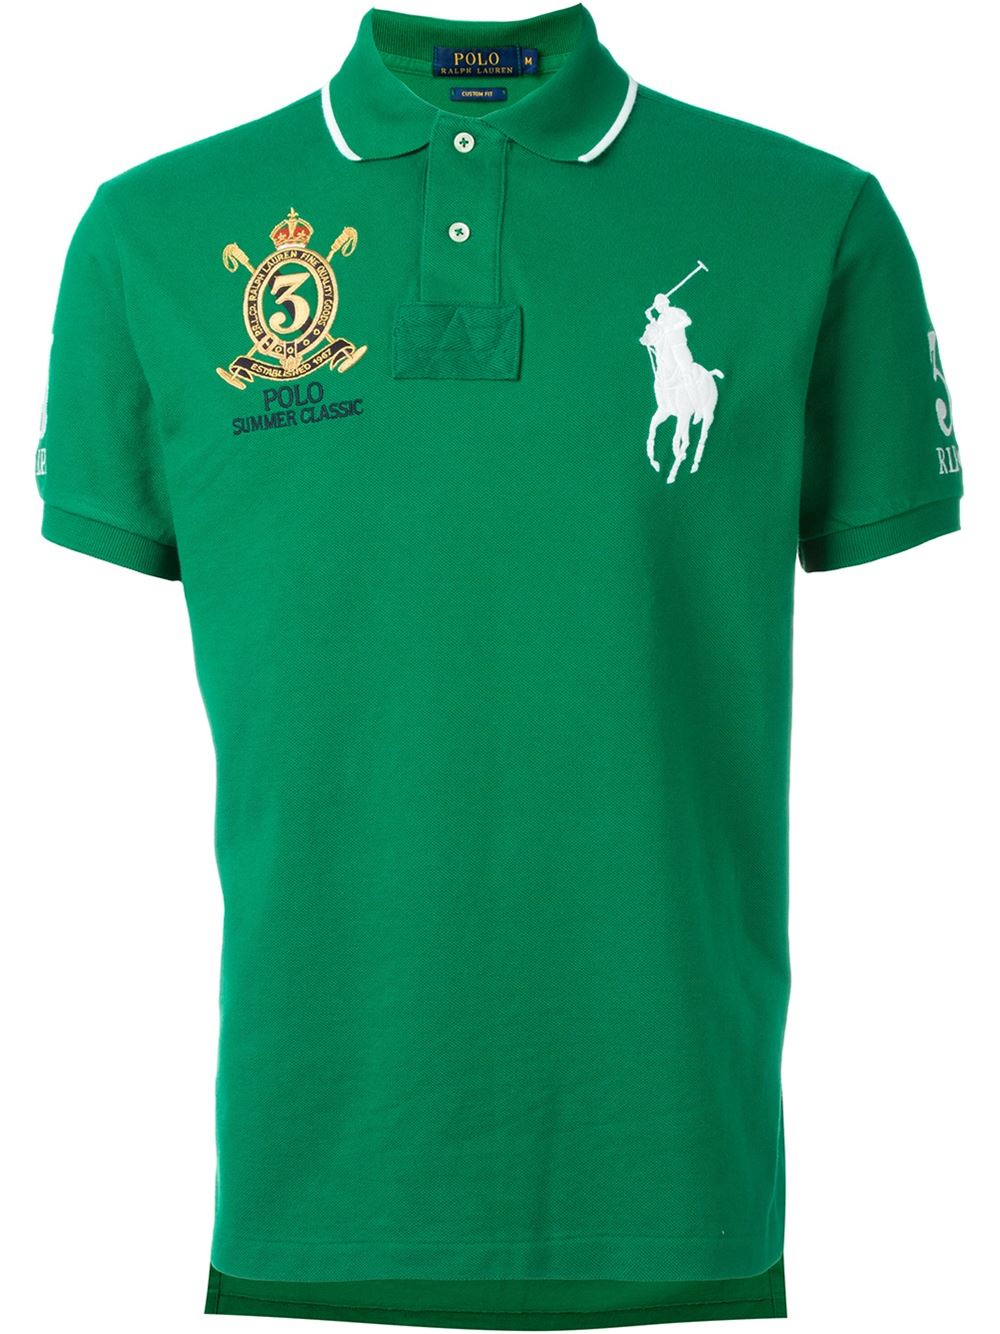 Lyst polo ralph lauren embroidered logo polo shirt in for Polo shirt with fish logo